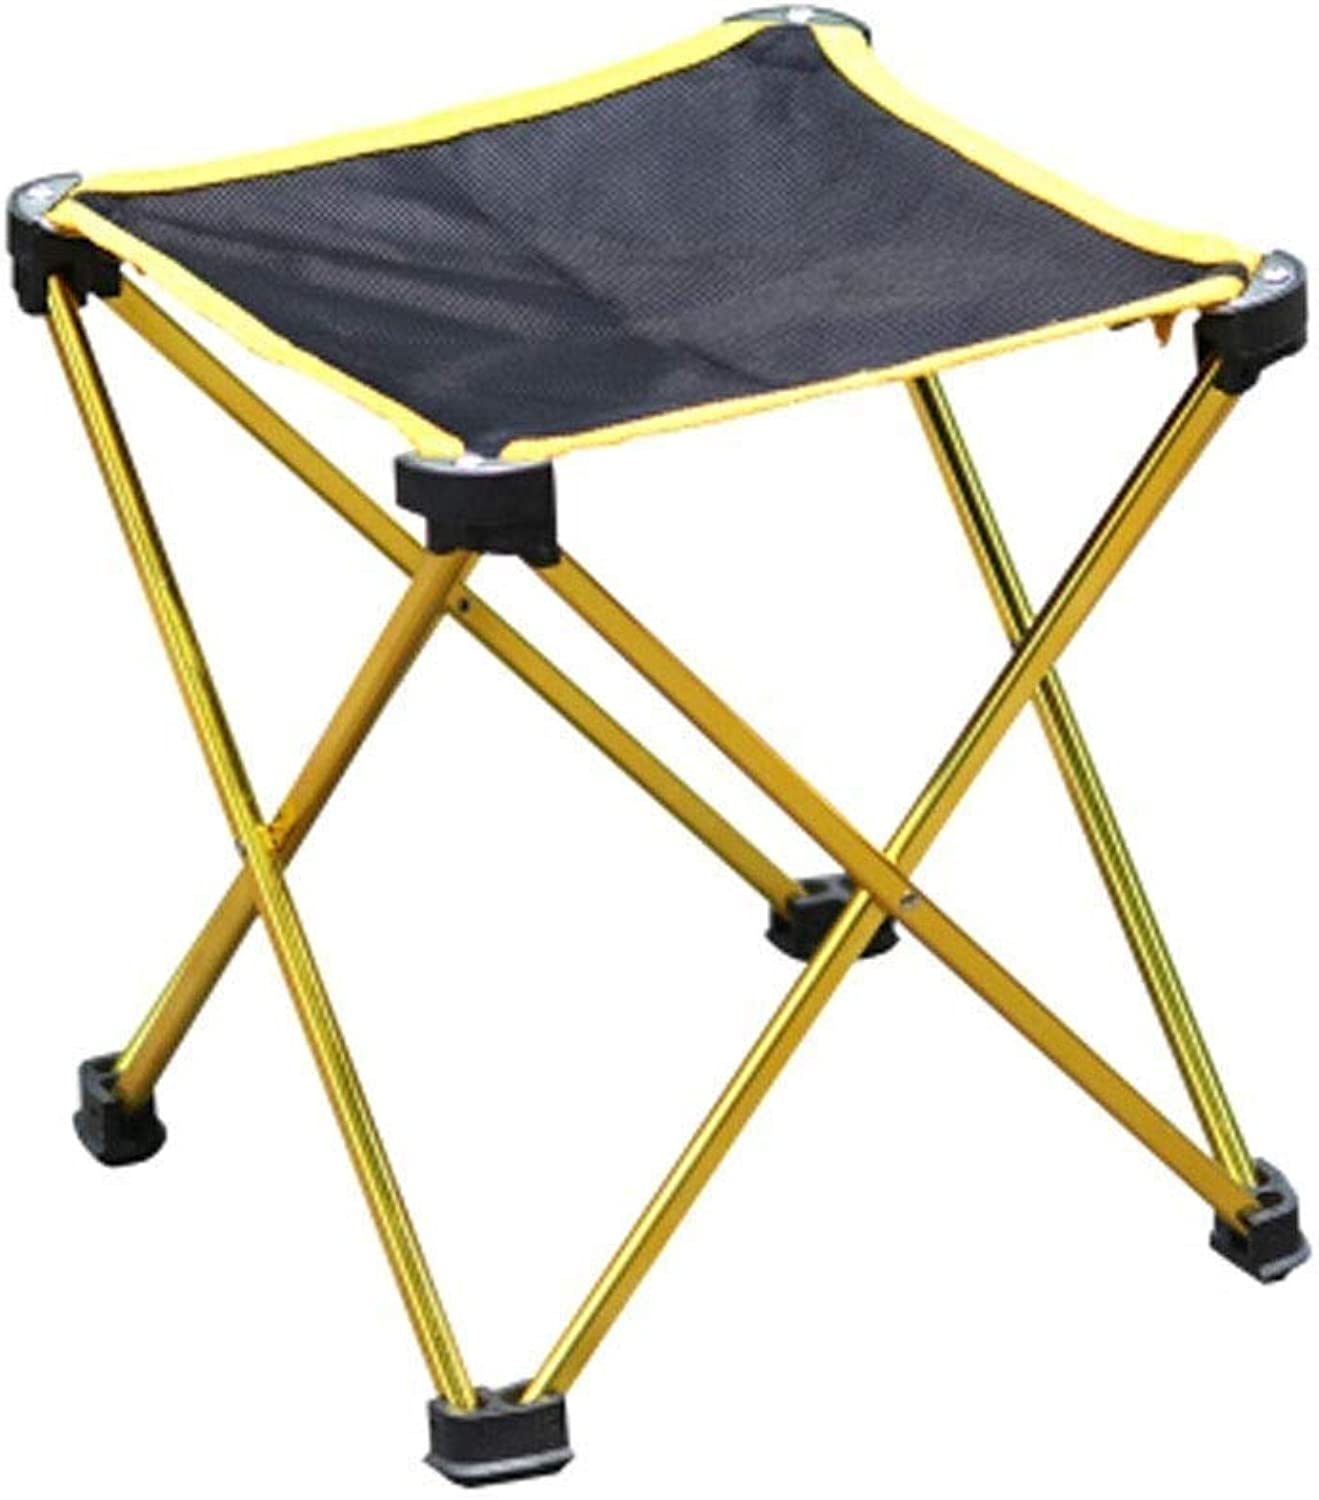 Outdoor Portable Folding Chair Camping Bench Aluminium Multi-Function Lightweight Casual Picnic Travel Fishing Mountaineering Barbecue Park Adventure Beach 4 colors Optional (color   gold)